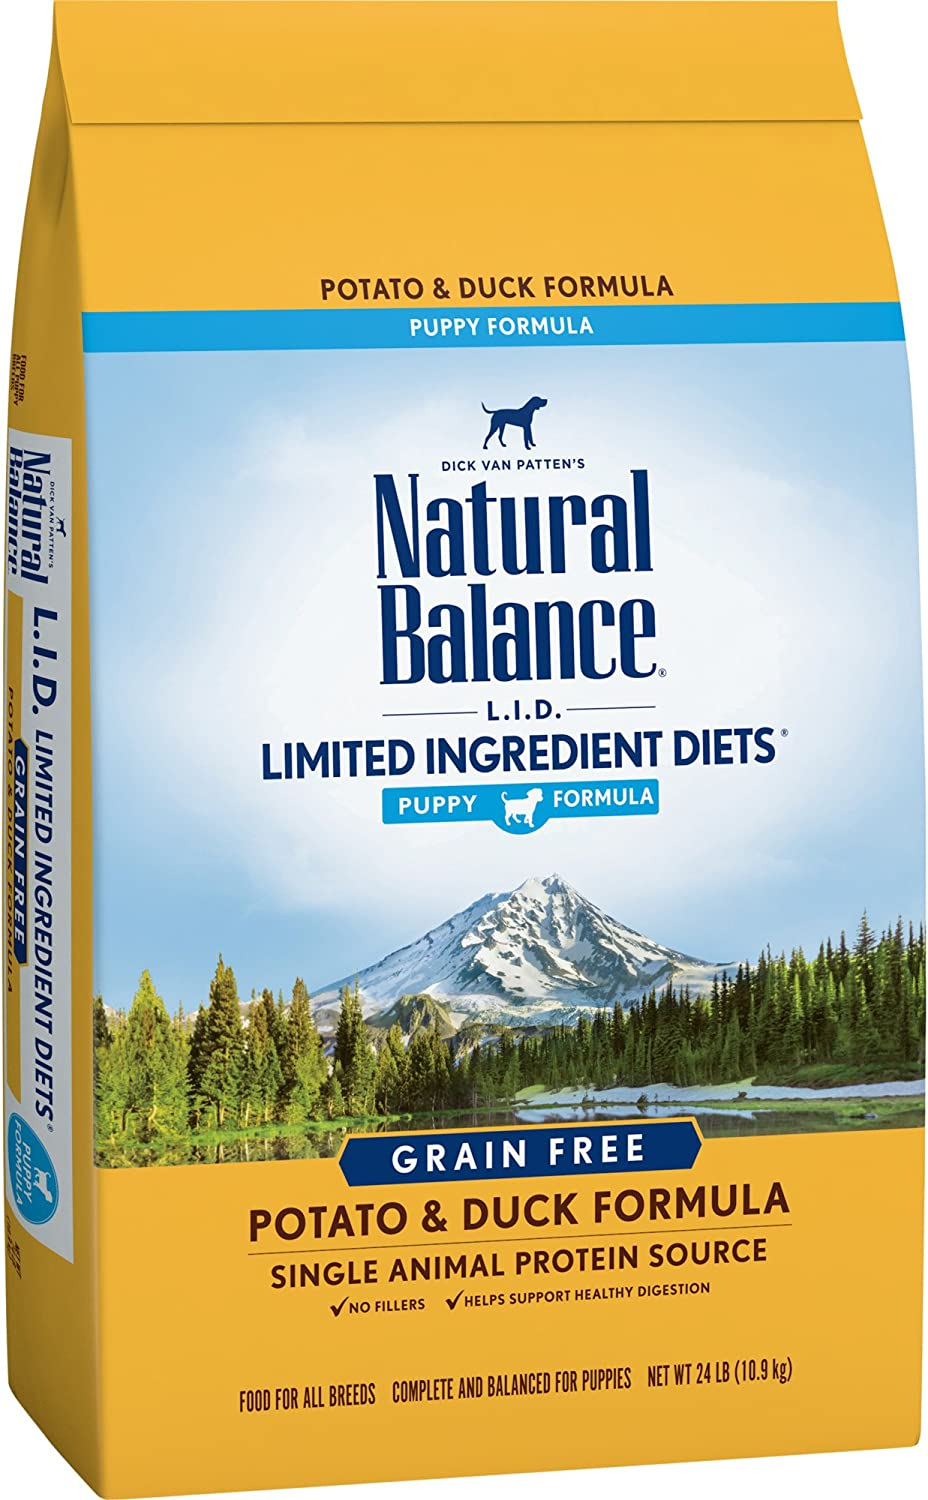 Natural Balance Puppy Formula L.I.D. Limited Ingredient Diets Dry Dog Food, Potato & Duck Formula, Grain Free, 24Pound